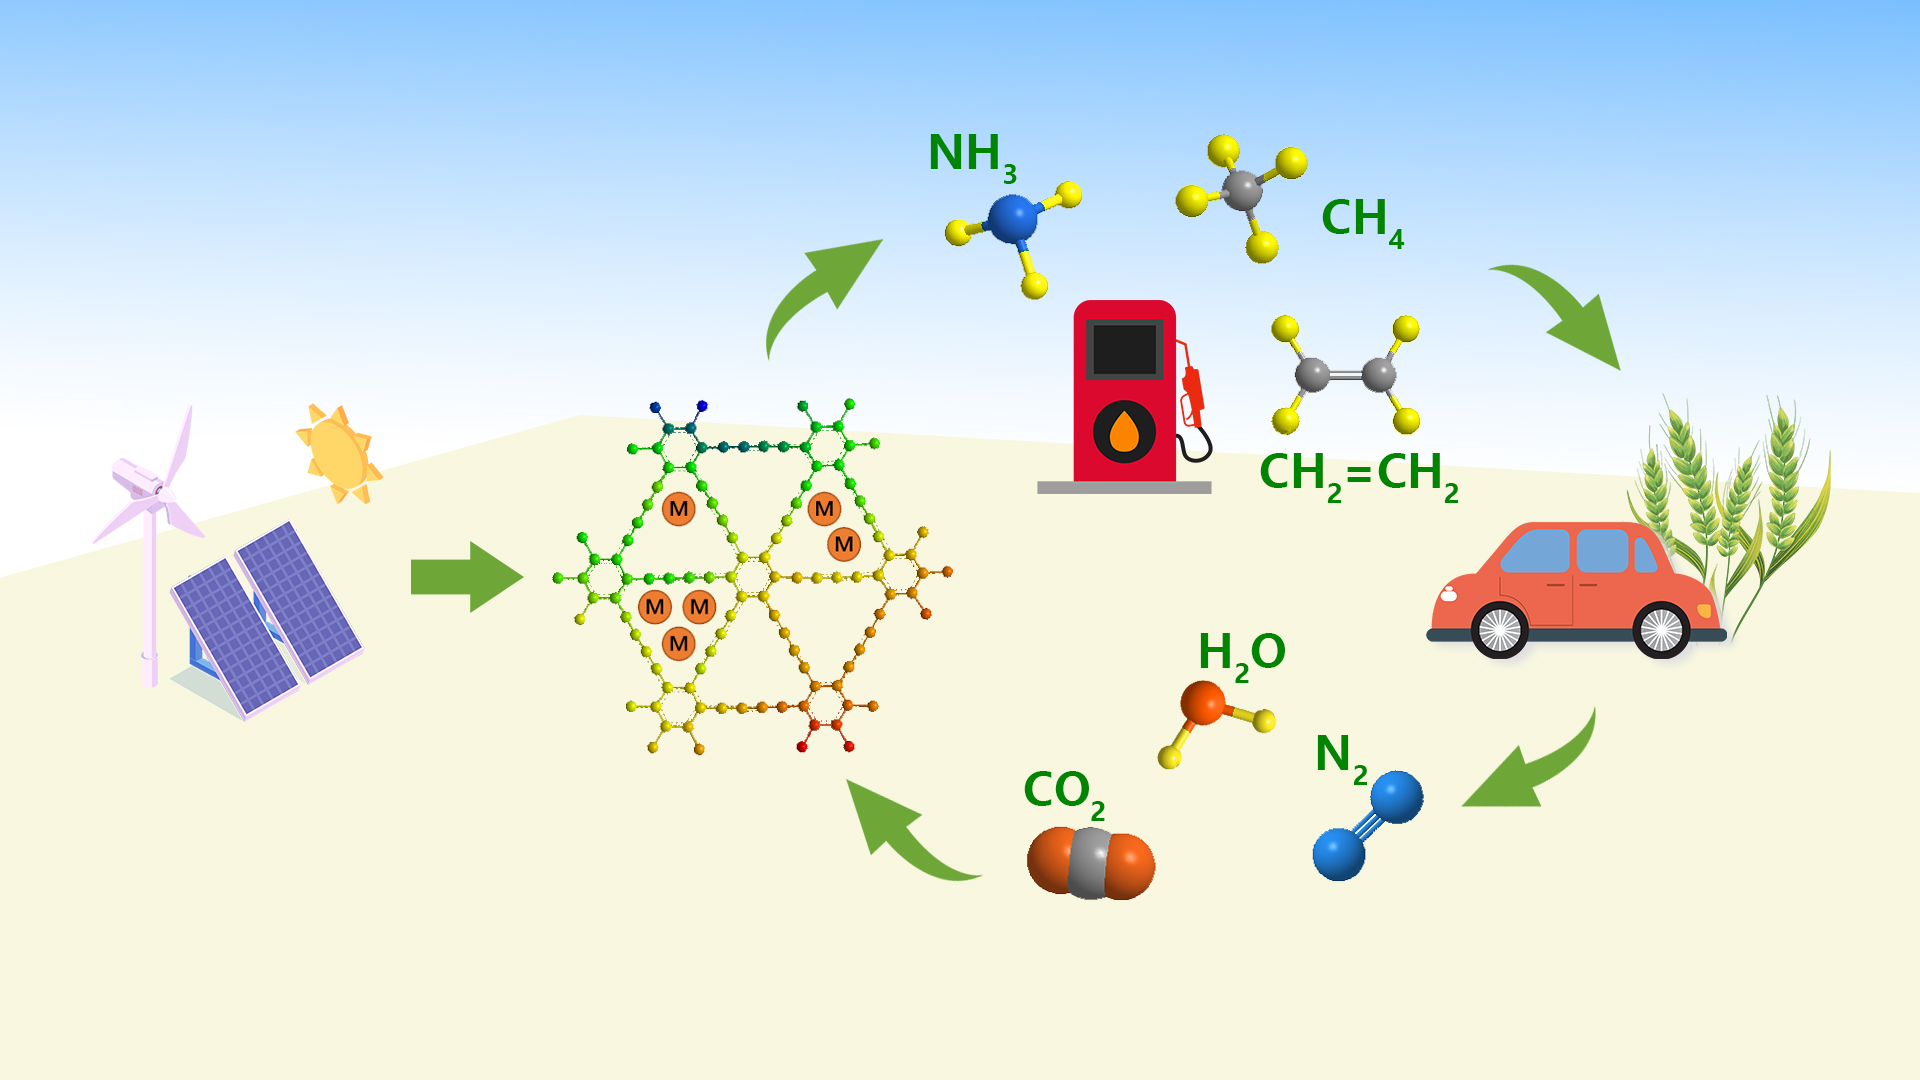 SUSTech researchers make progress in electrochemical catalysis towards green fuel production